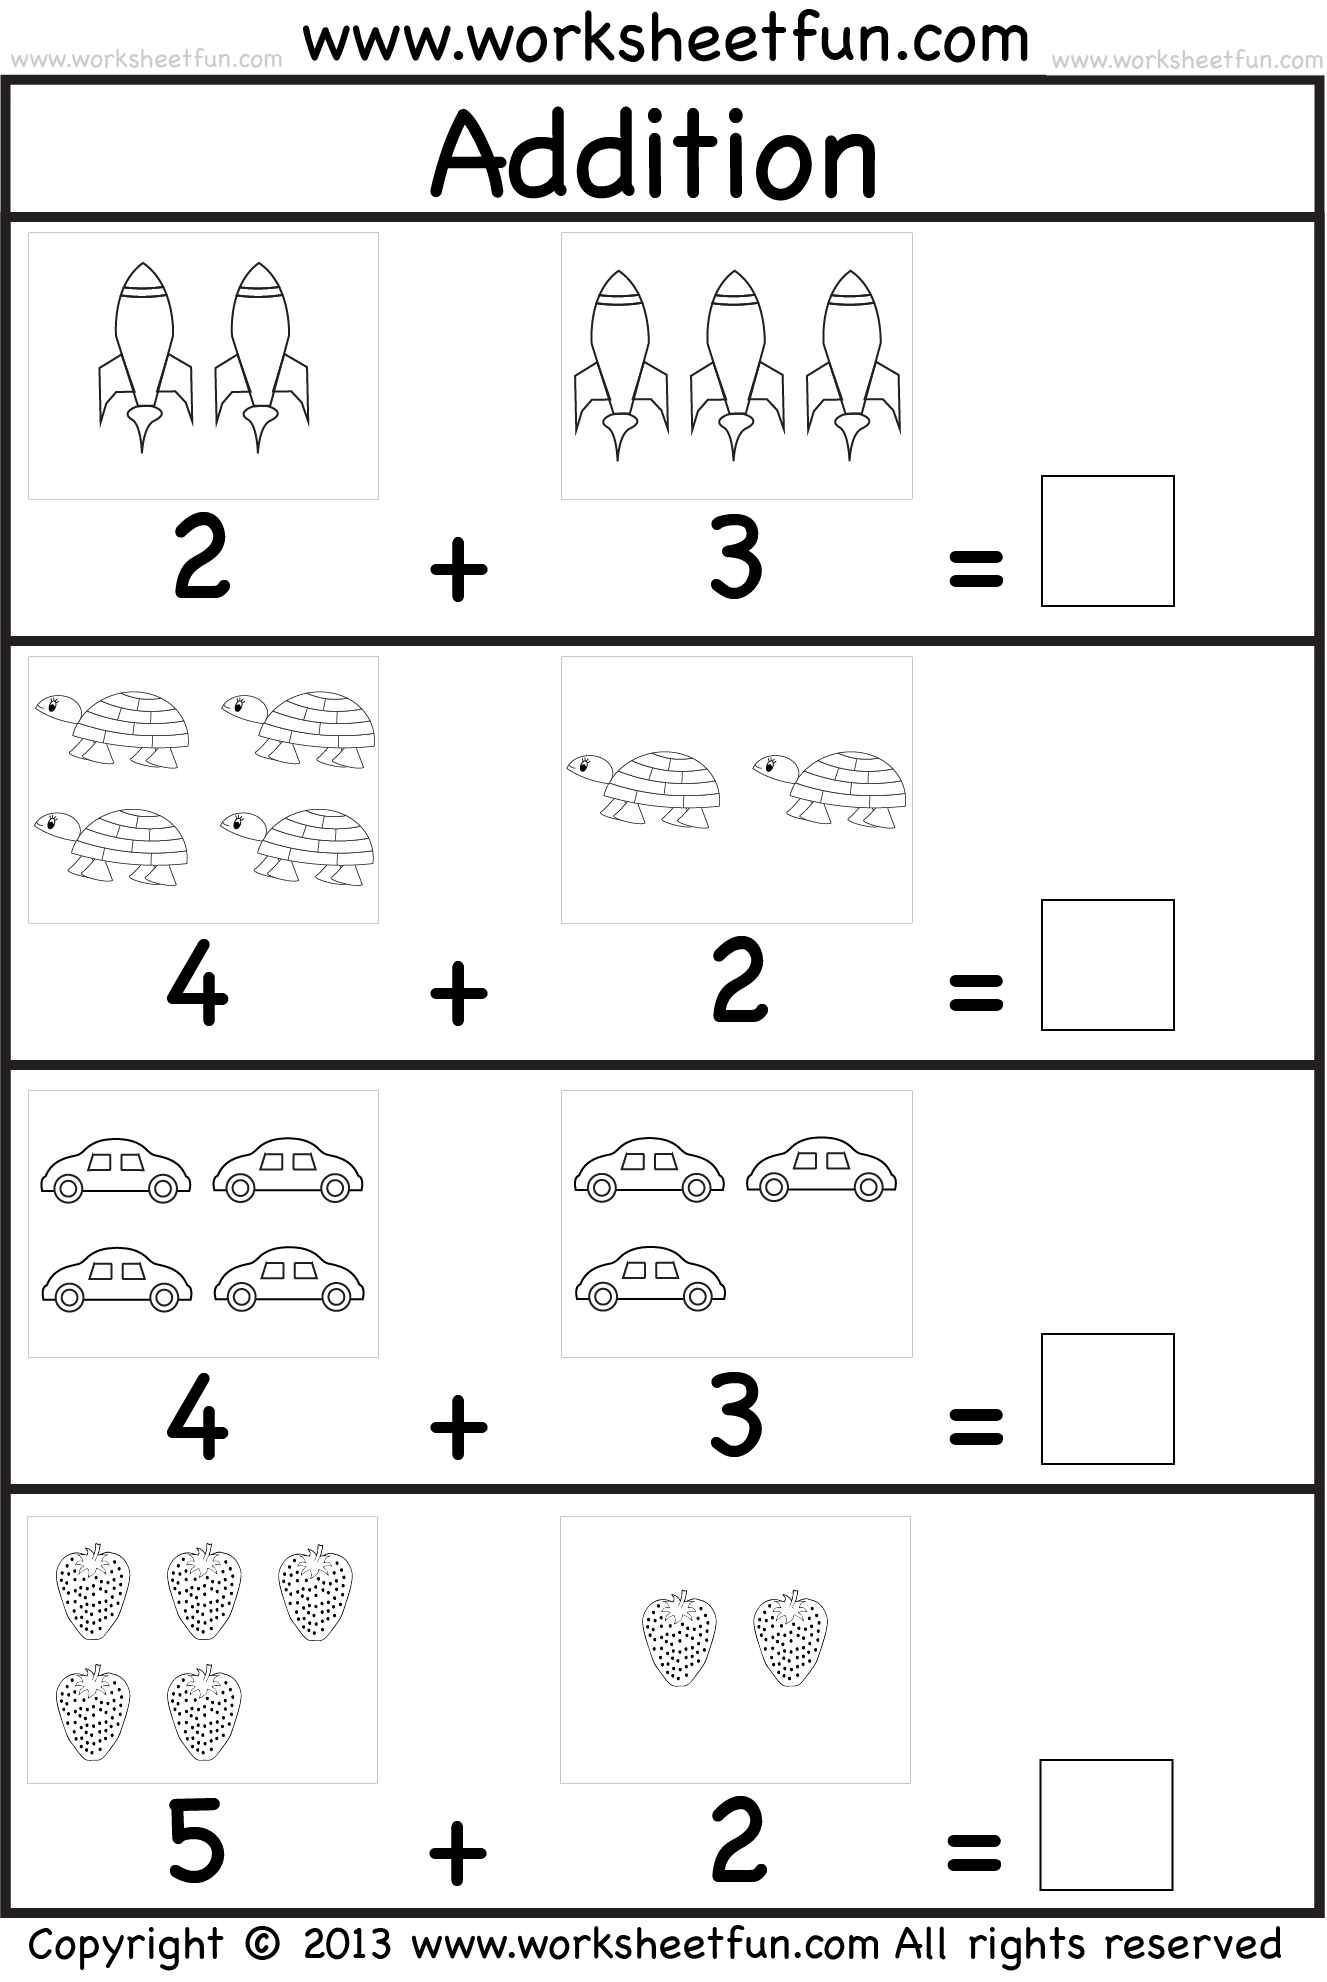 Worksheets Preschool Addition Worksheets addition worksheet this site has great free worksheets for everything from abcs to